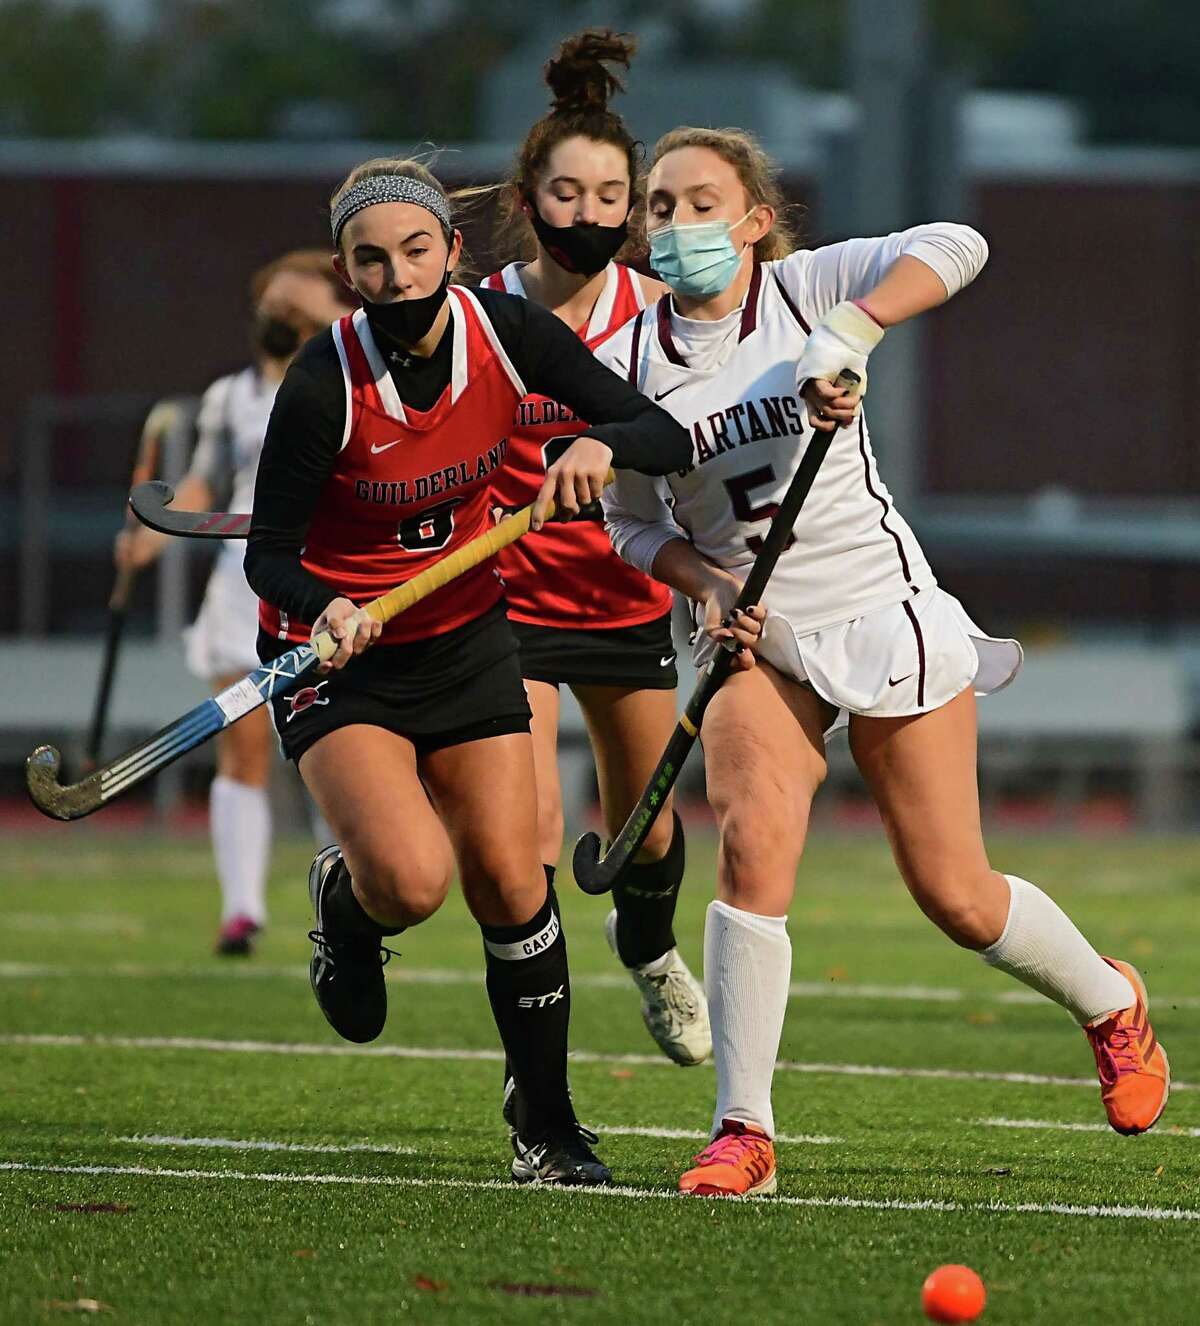 Guilderland's Sophia Sericolo, left, and Burnt Hills' Paige Thowe battle during a field hockey game on Monday, Oct. 26, 2020 in Burnt Hills, N.Y. (Lori Van Buren/Times Union)